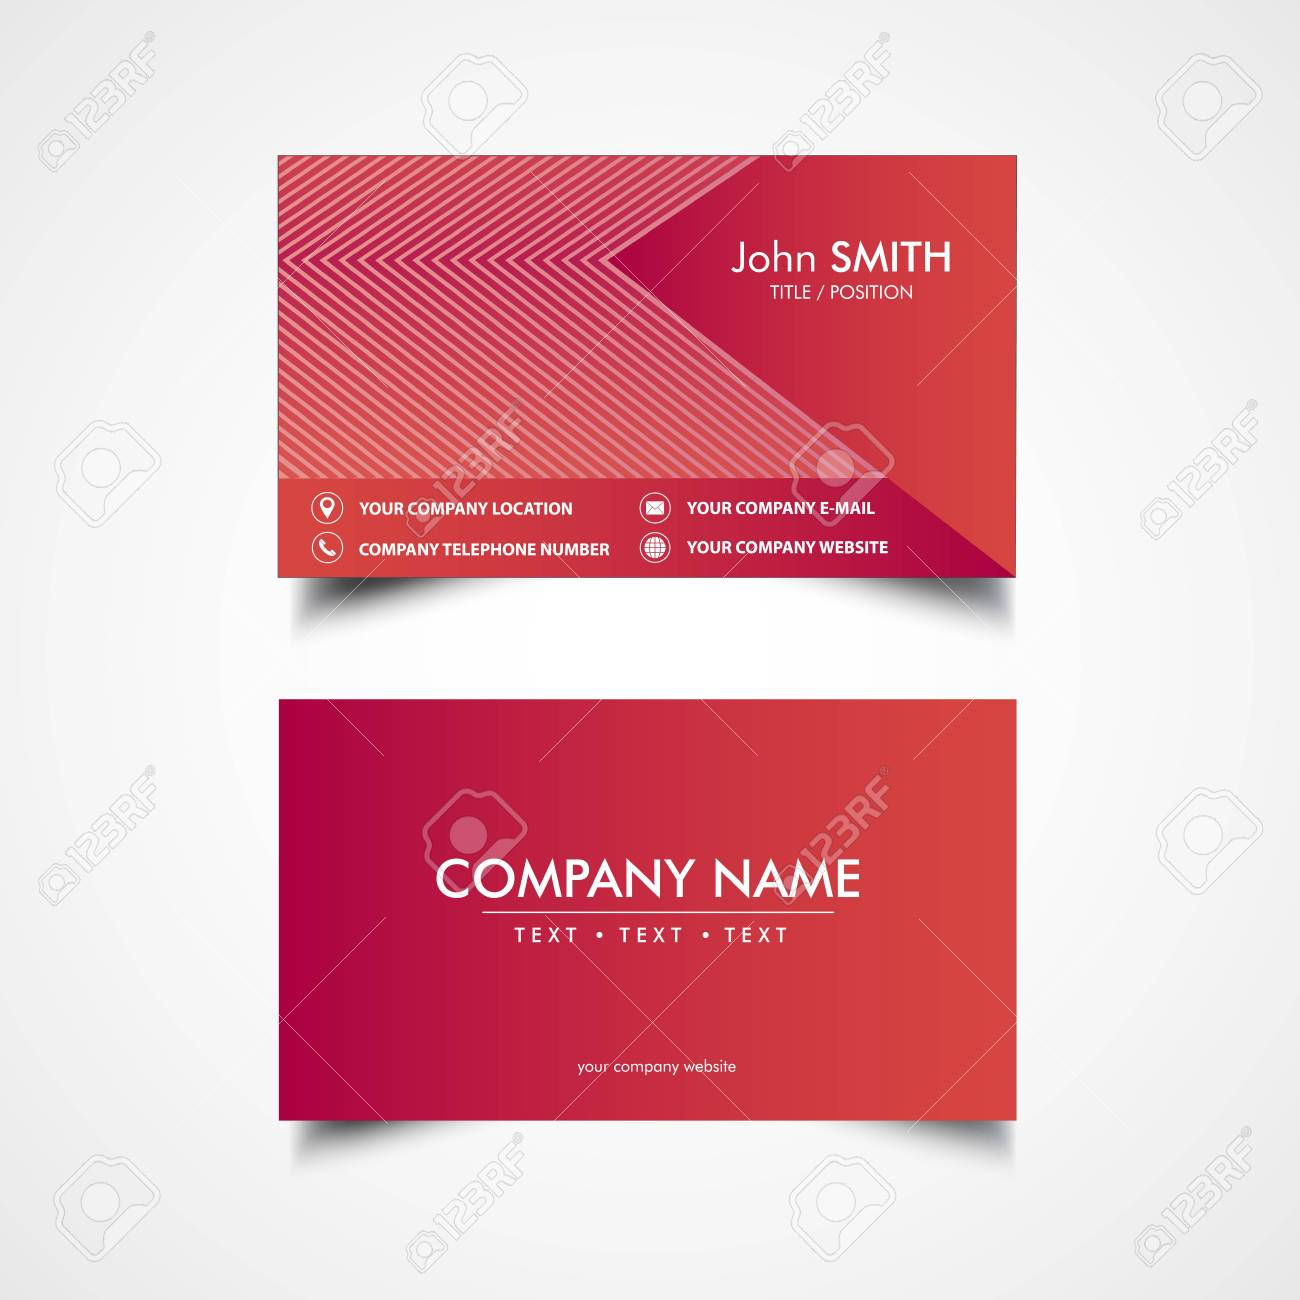 Simple business card template vector illustration eps file simple business card template vector illustration eps file stock vector 83413609 friedricerecipe Gallery